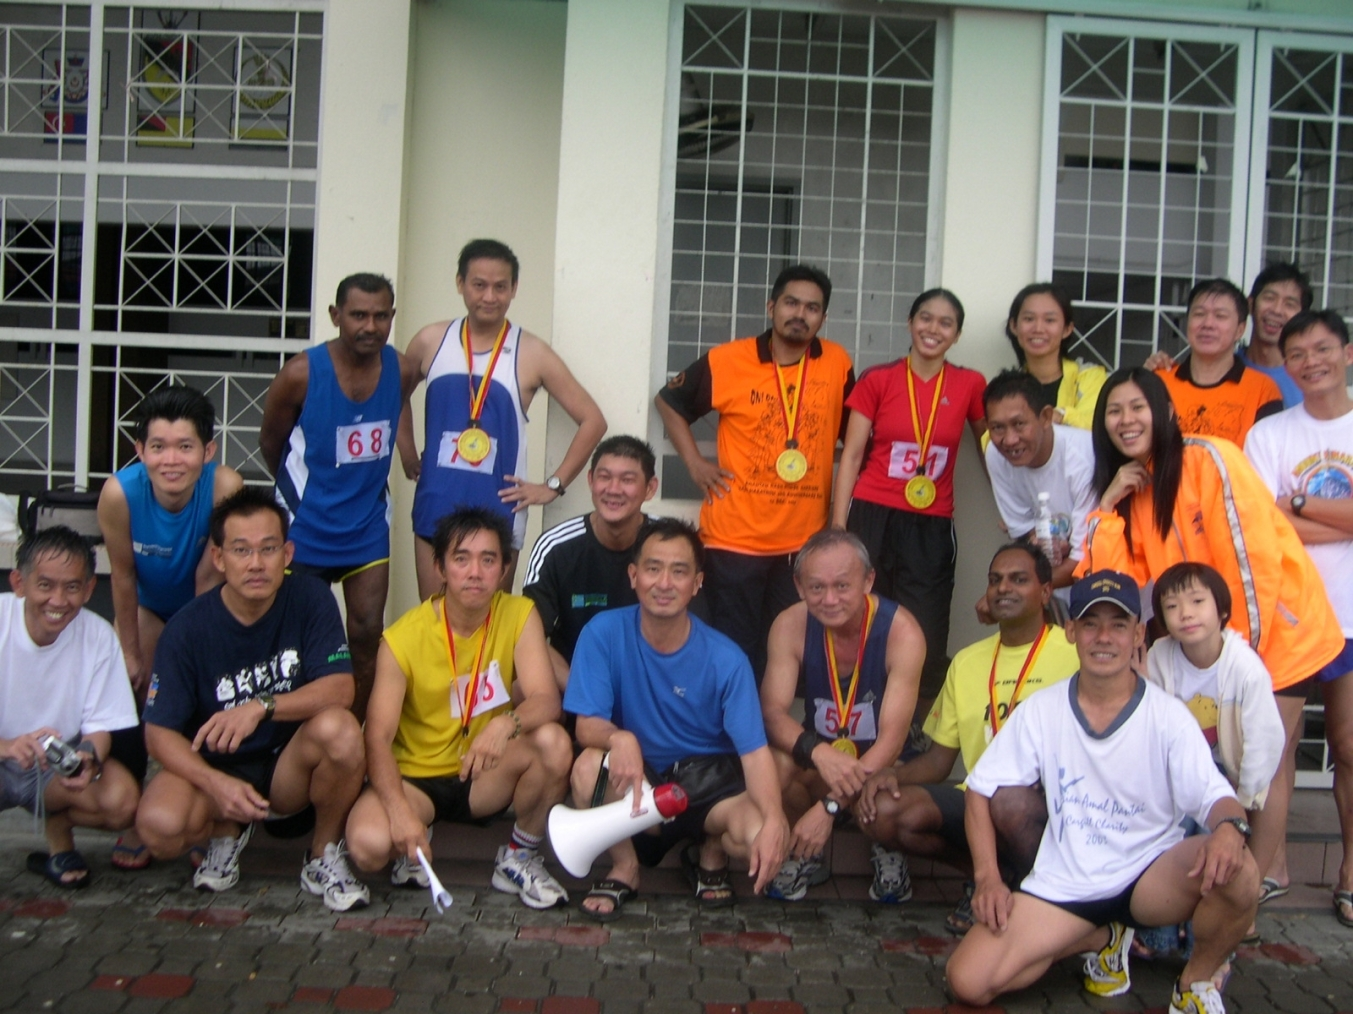 My 1st half-marathon in 2005